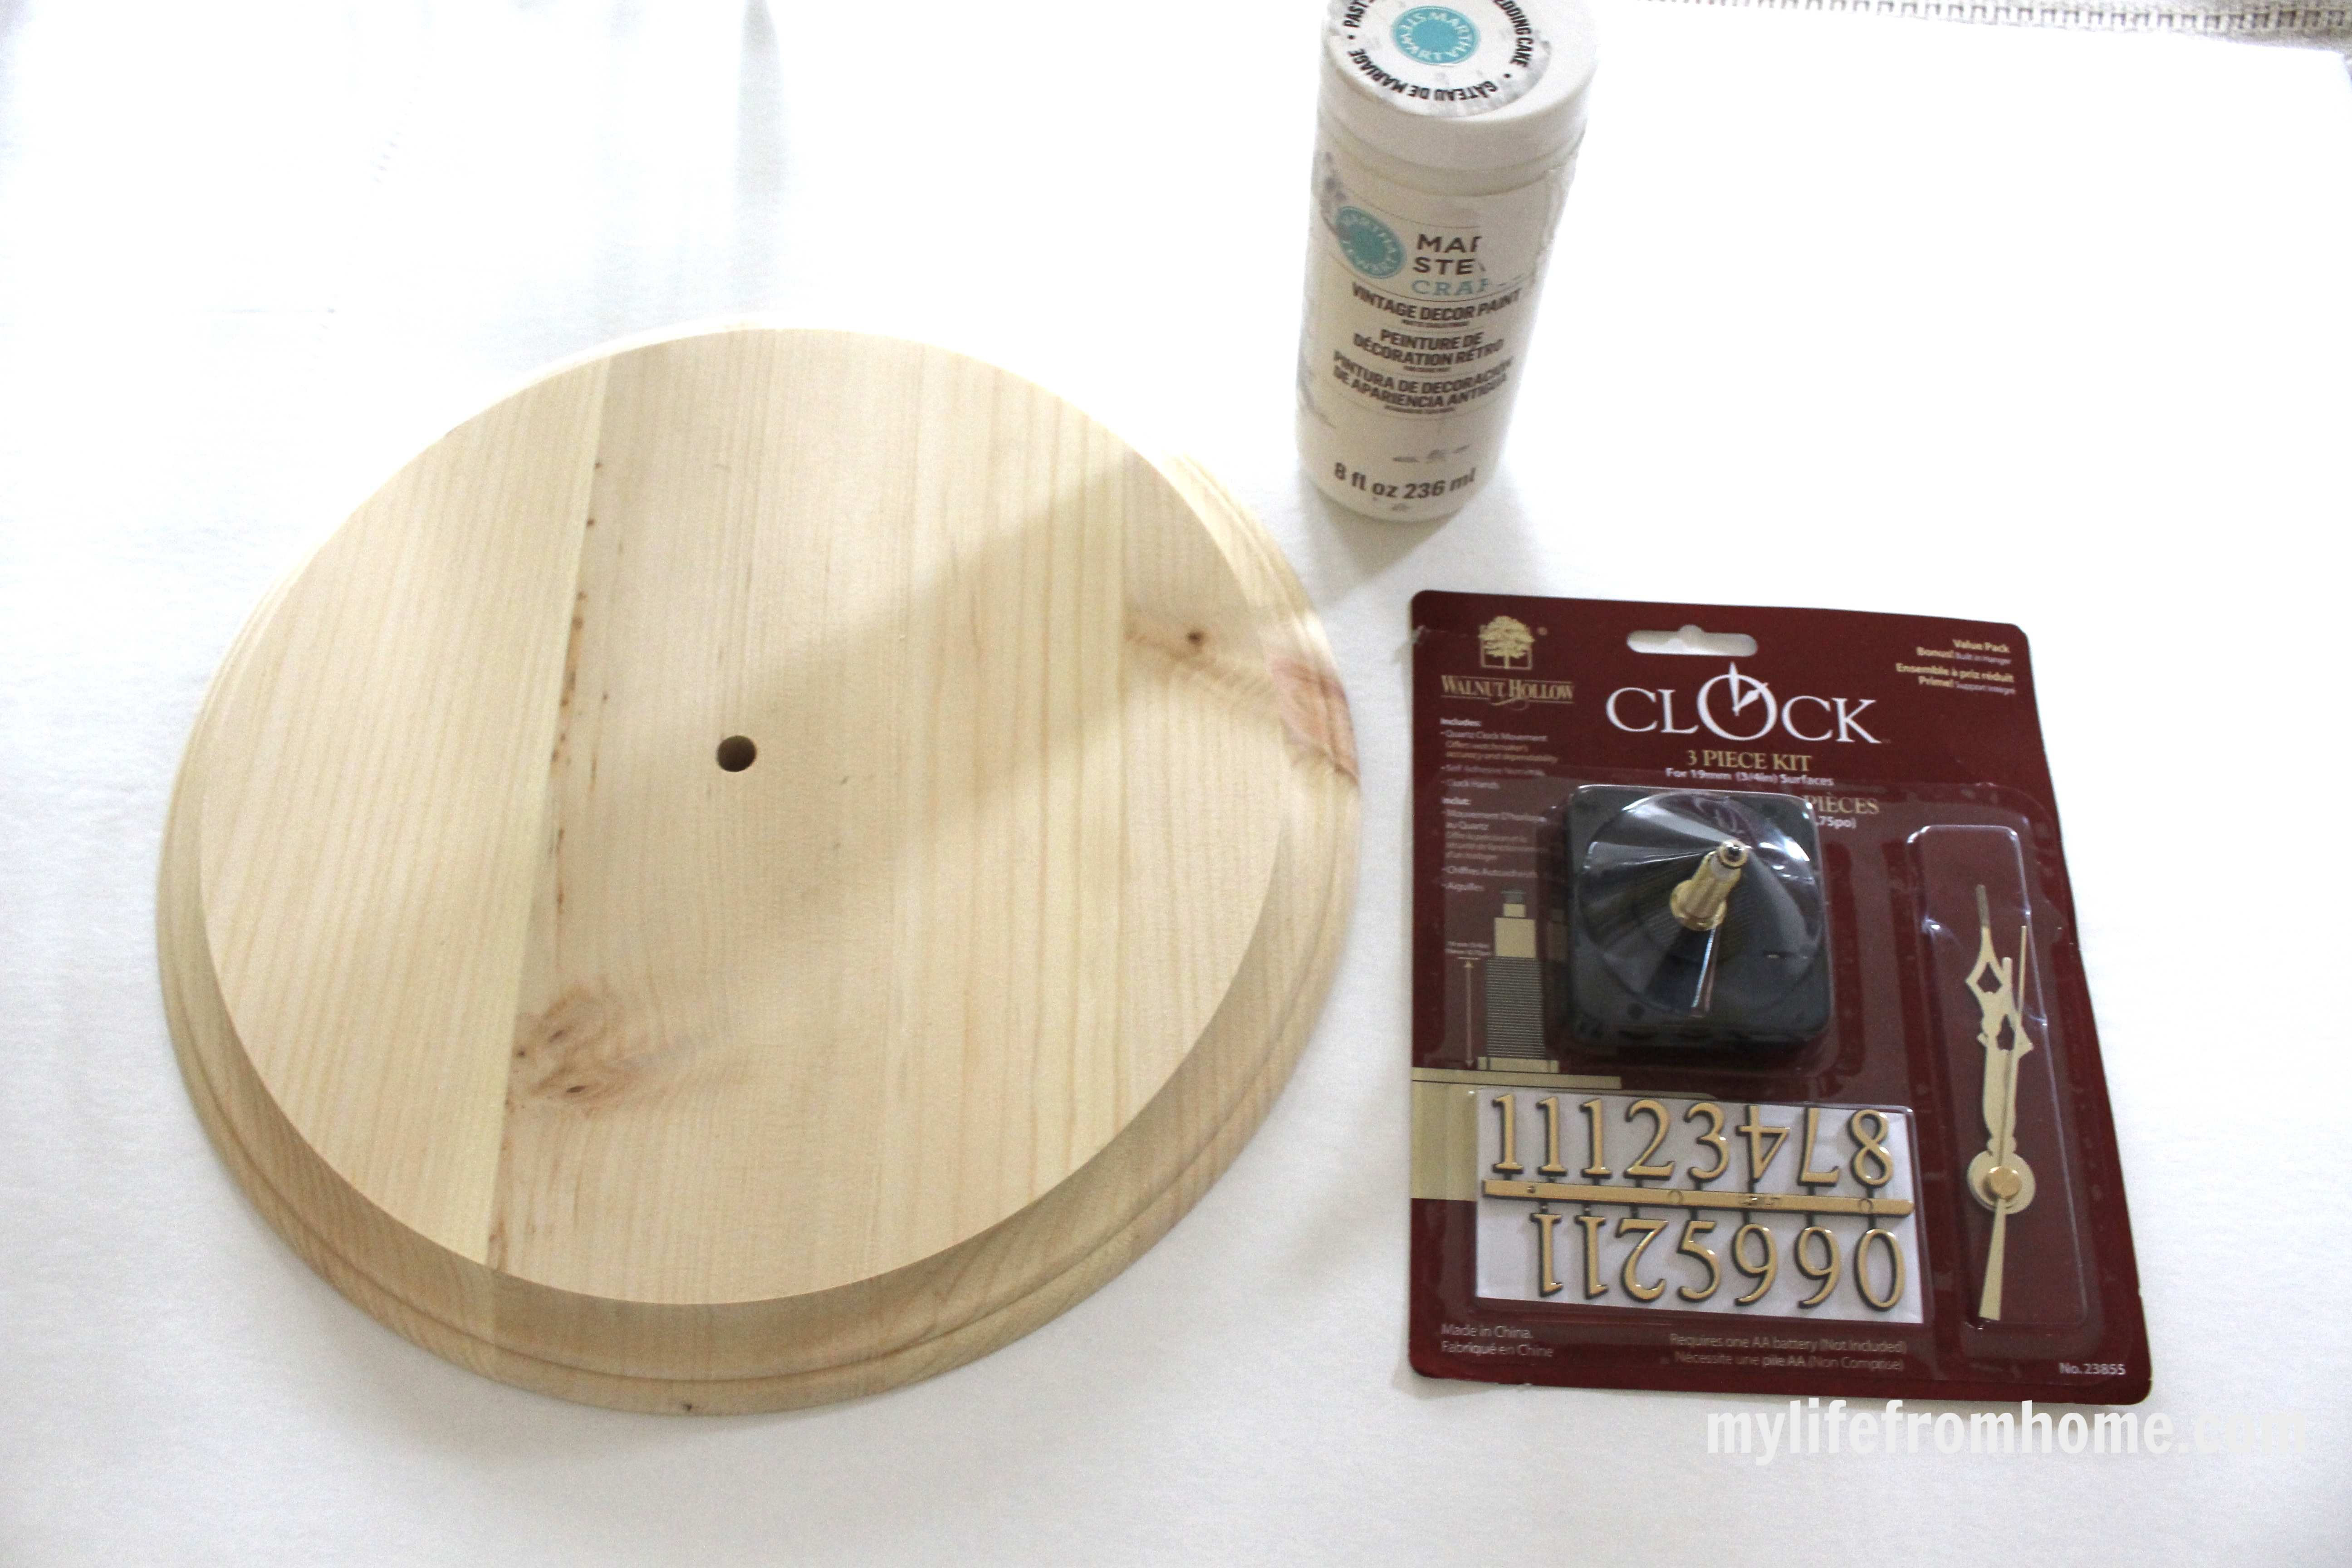 Walnut Hollow Round & Clock parts by www.mylifefromhome.com